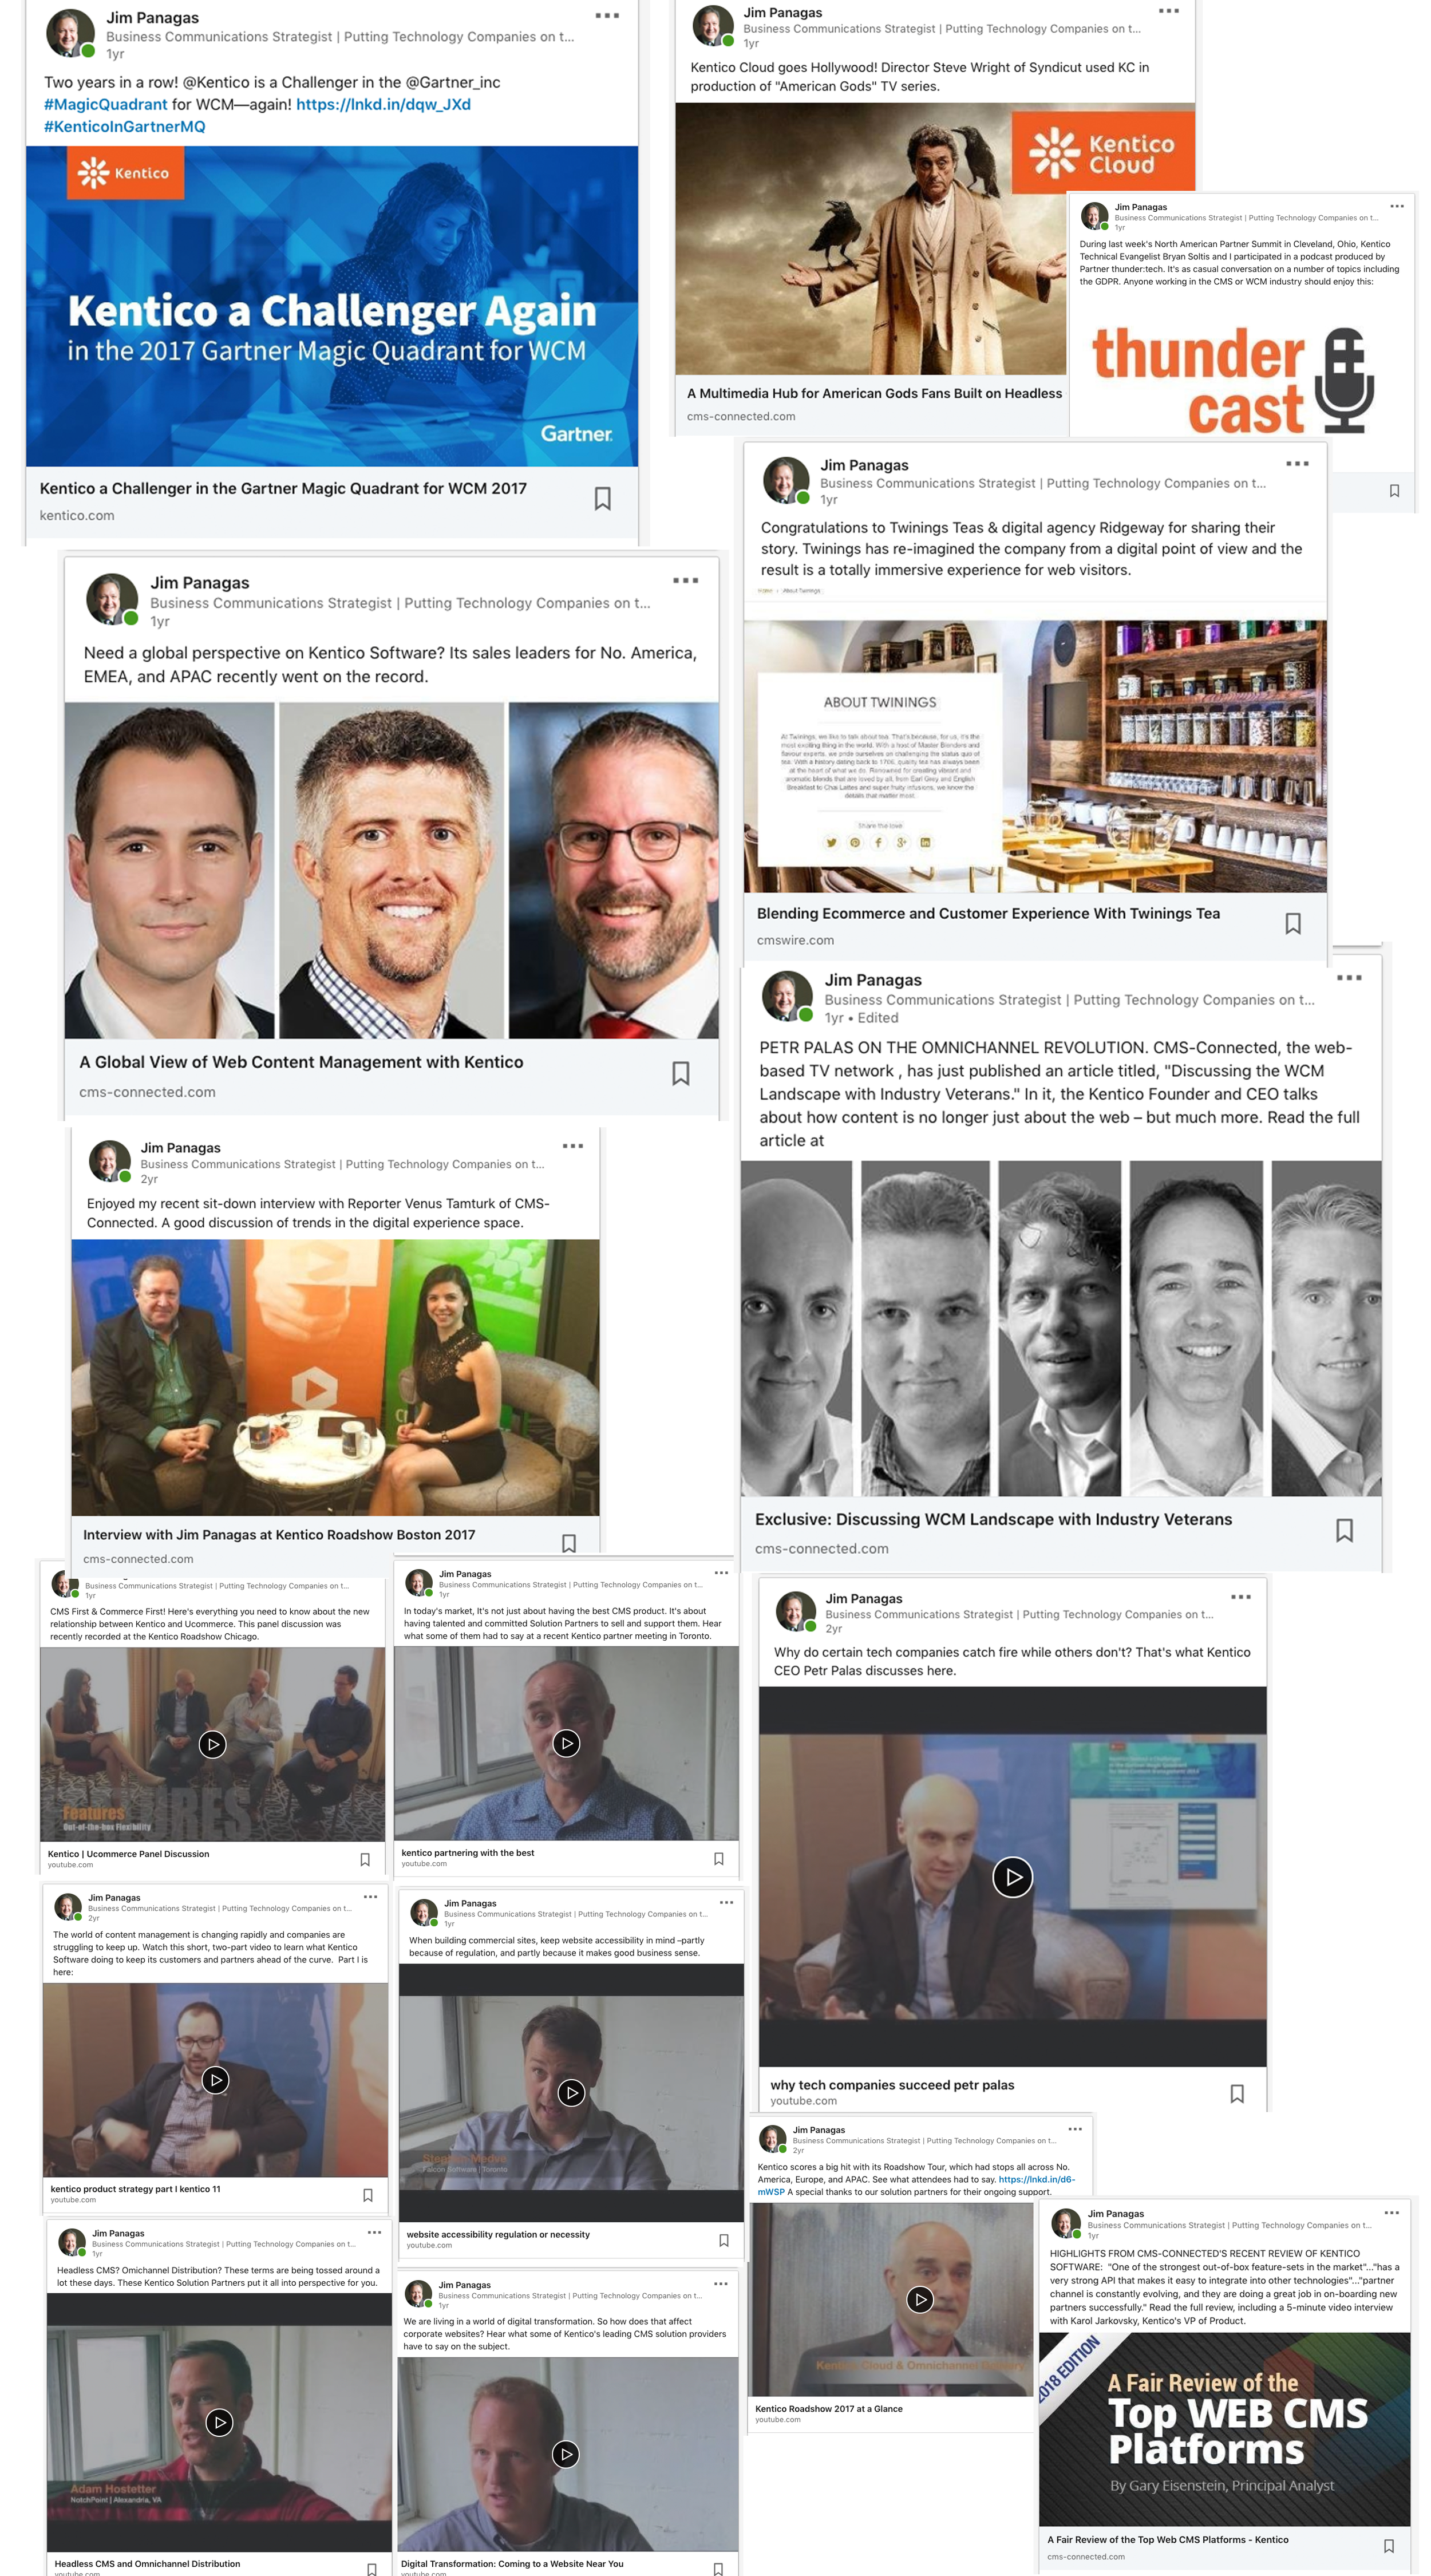 - PICTURED ABOVE IS A SAMPLING OF THE SOCIAL MEDIA WORK THAT JIM PANAGAS DID FOR KENTICO SOFTWARE FROM 2015-2018 AS HE WORKED TO RAISE THE VISIBILITY OF THIS EUROPEAN CMS VENDOR IN NORTH AMERICA.